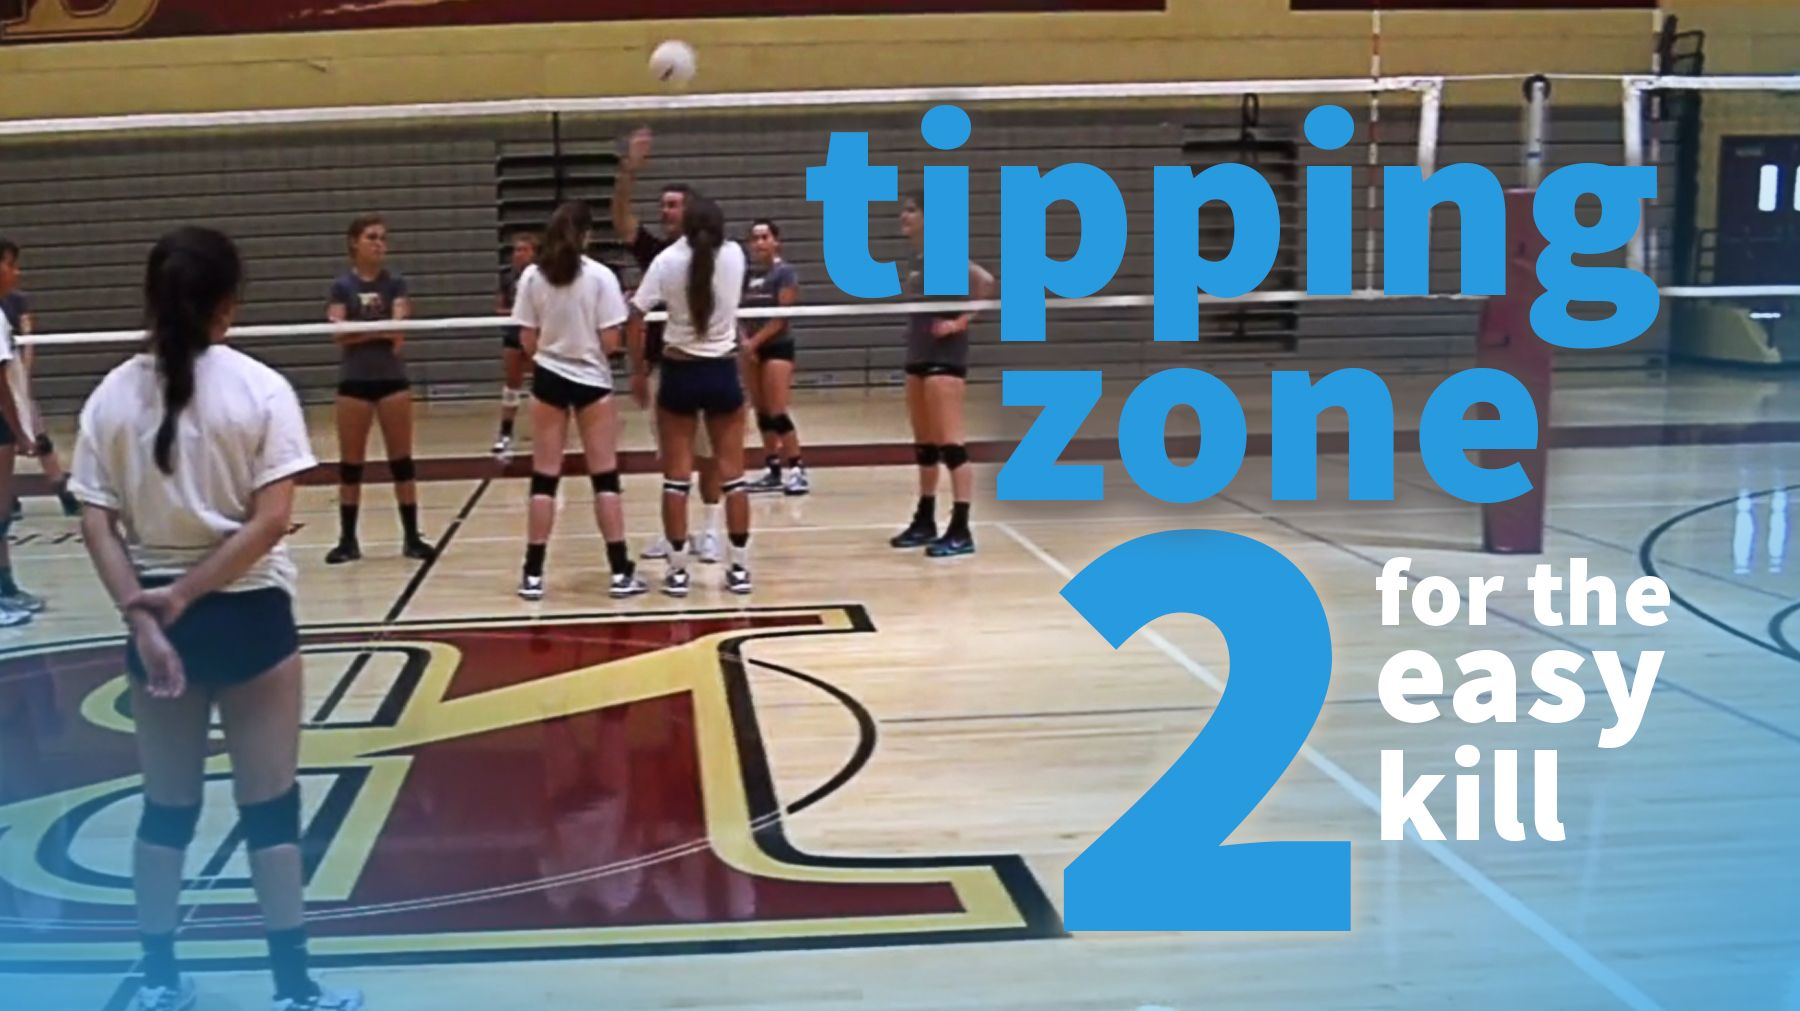 Strategy Tipping To Zone 2 Can Produce An Easy Kill Coaching Volleyball Volleyball Training Volleyball Skills